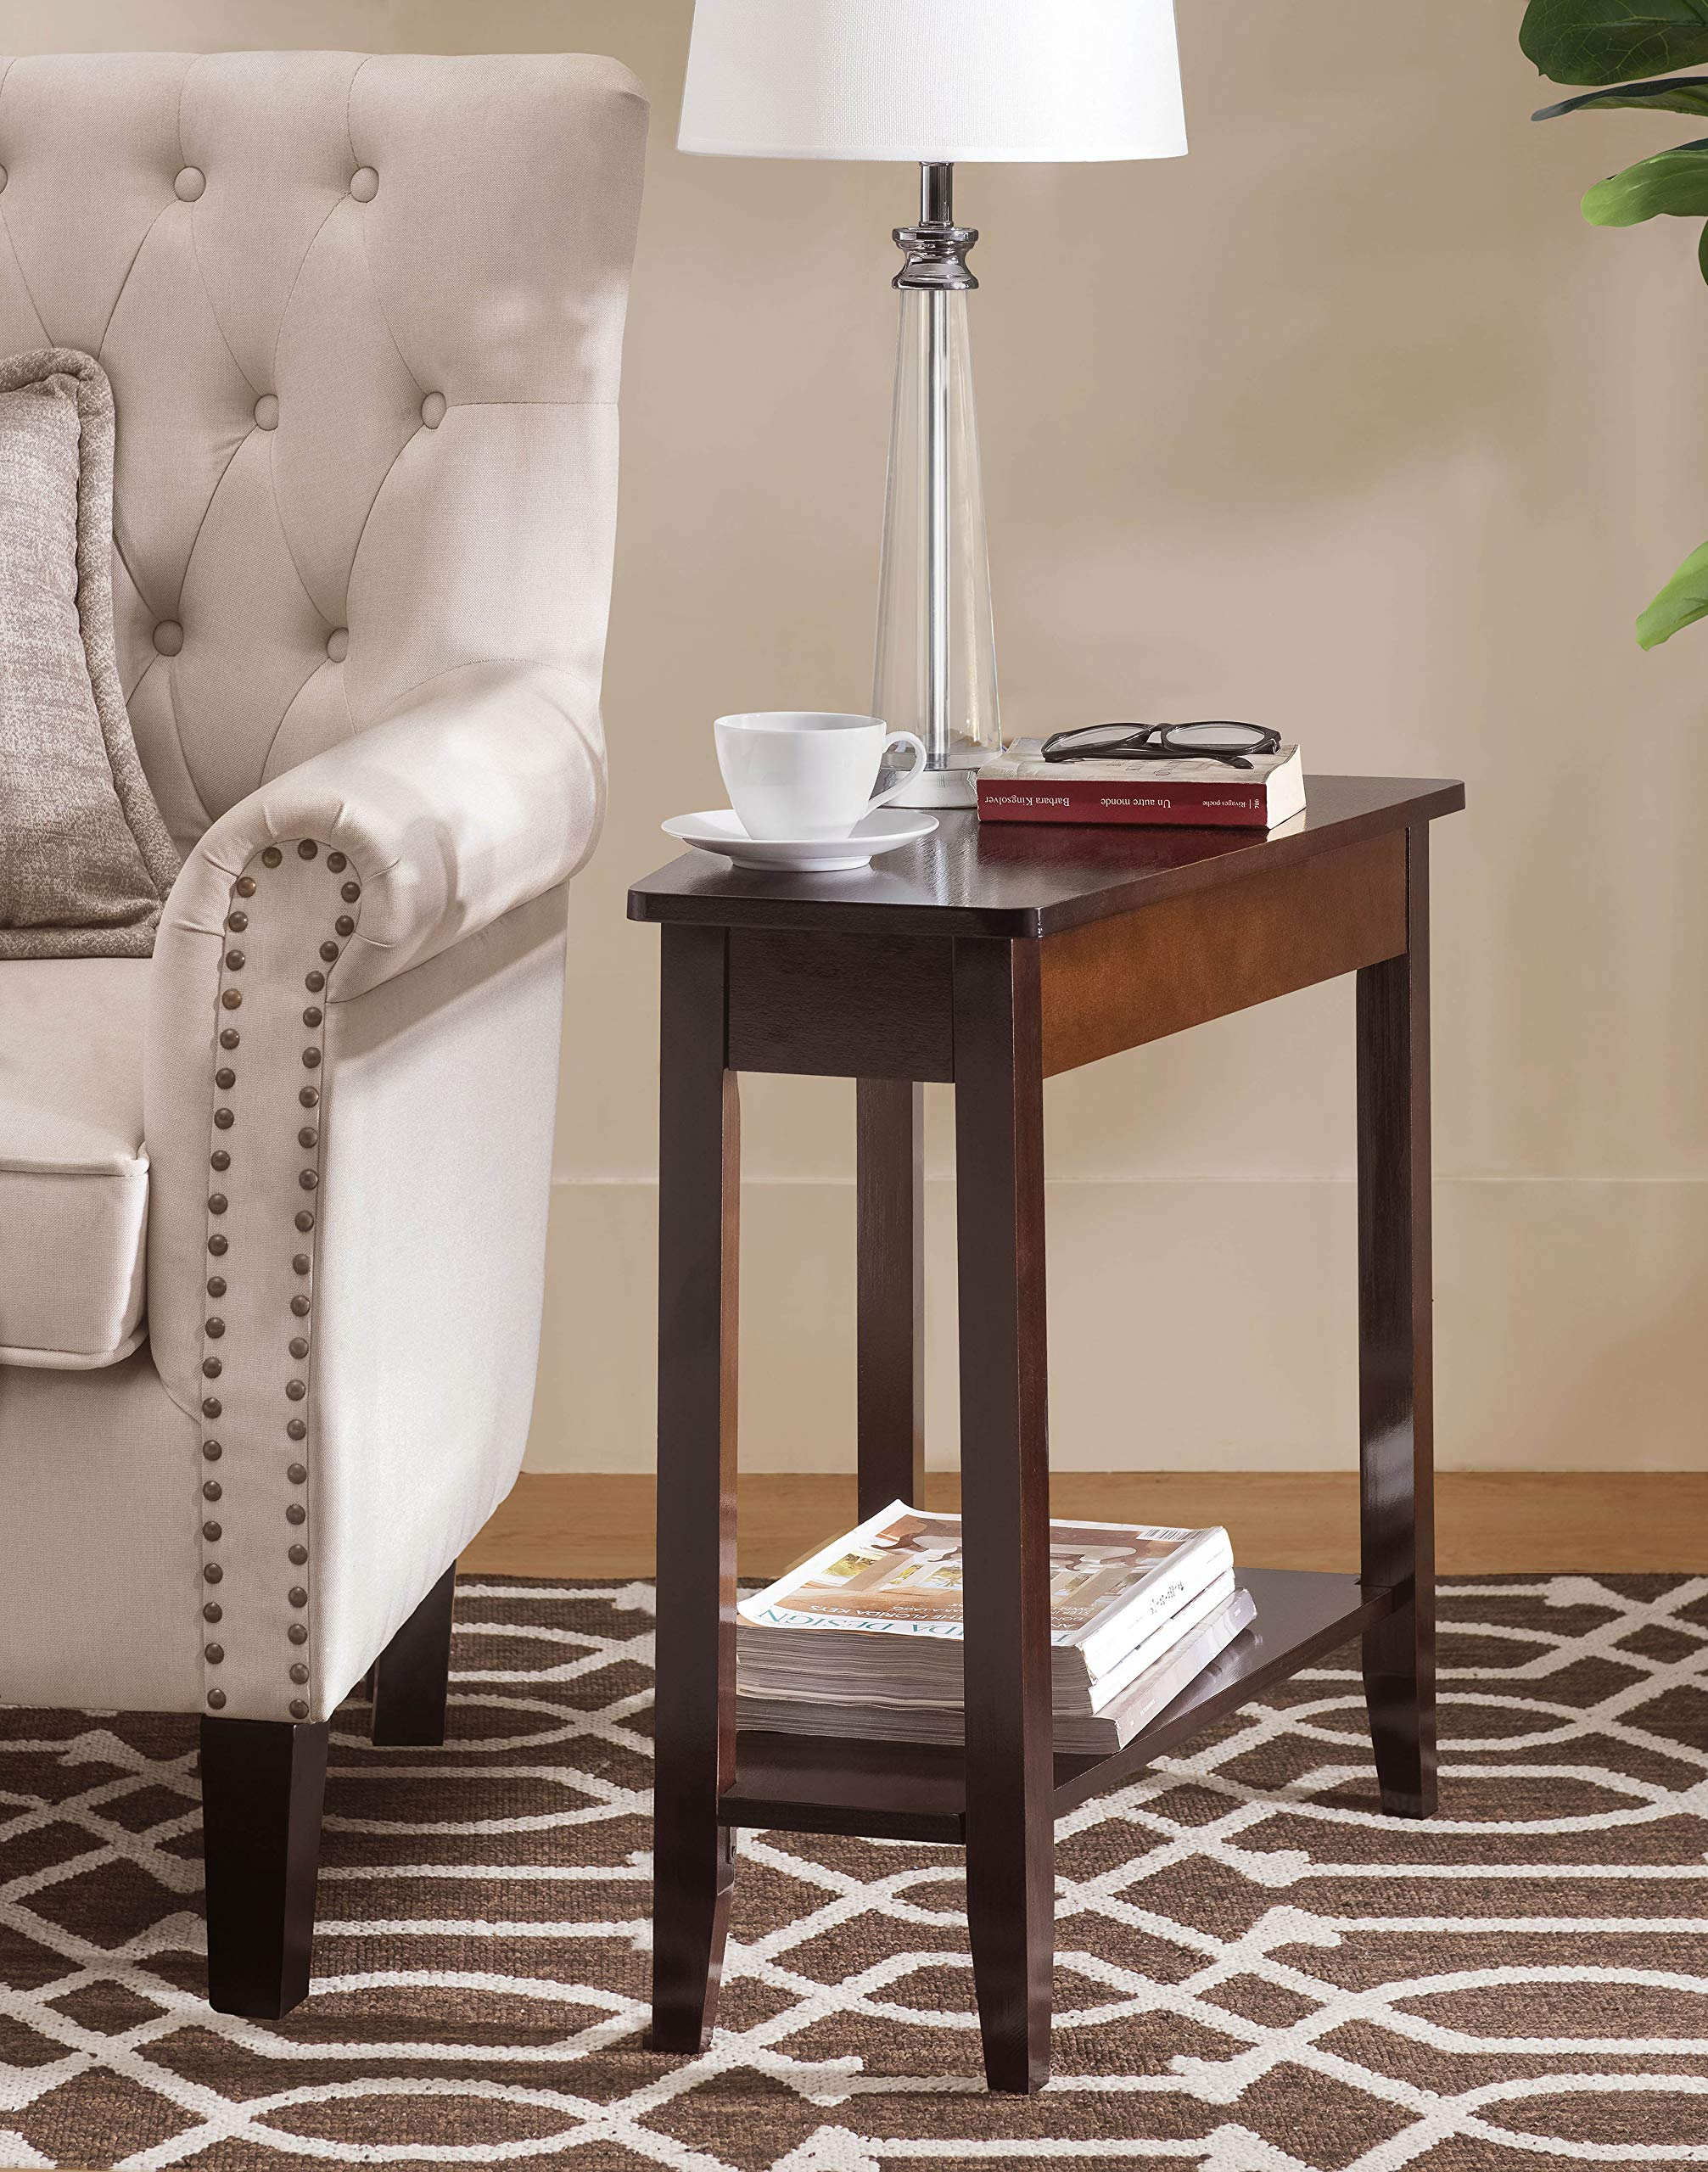 SJ Collection B12600003 Harbor Modern Wedge Side End Table, Small, Espresso